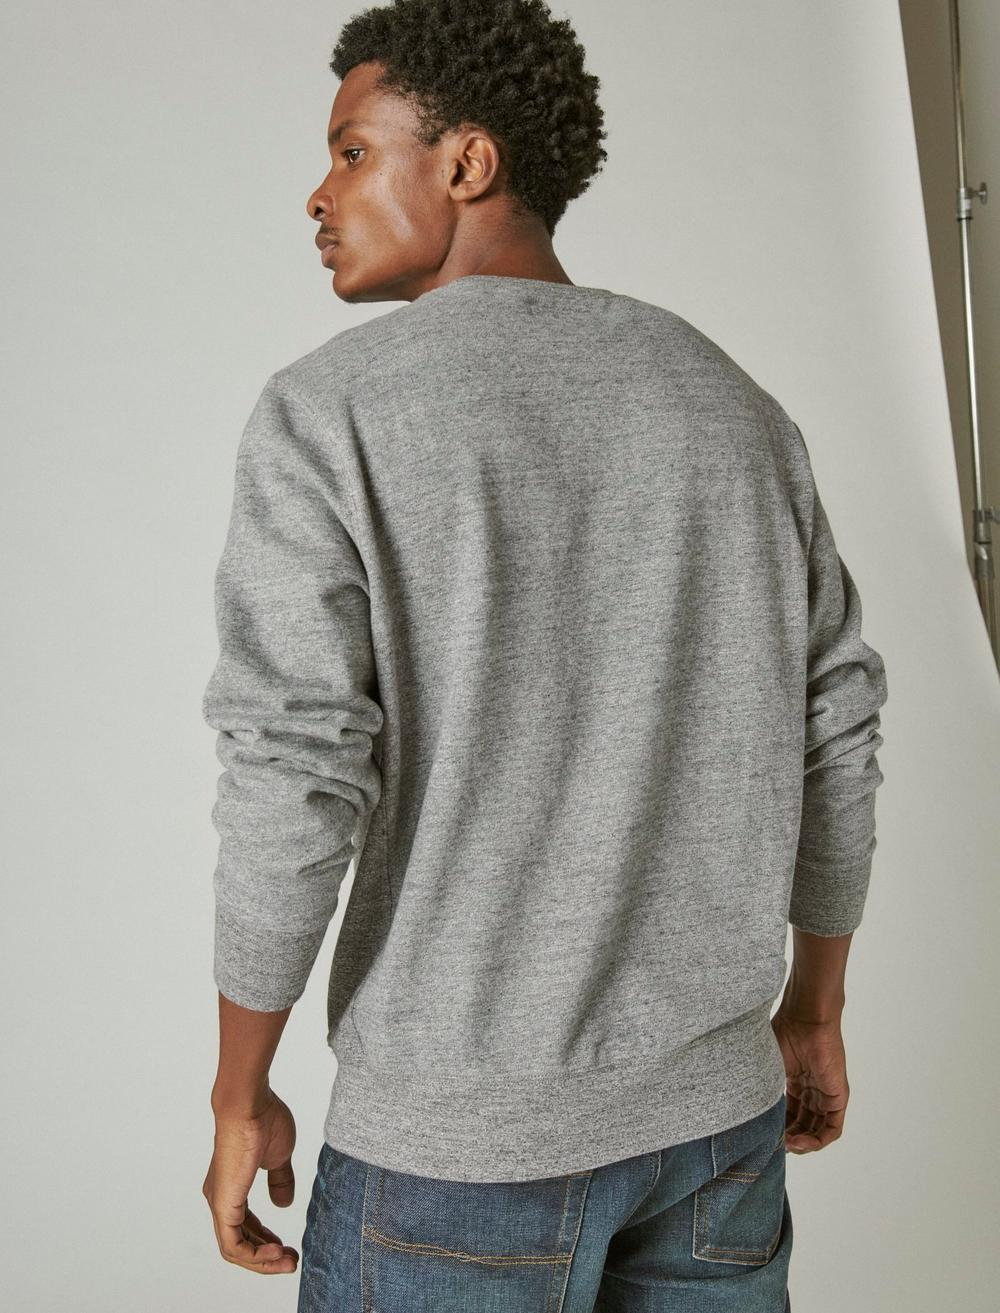 SUEDED FRENCH TERRY CREW SWEATSHIRT, image 4